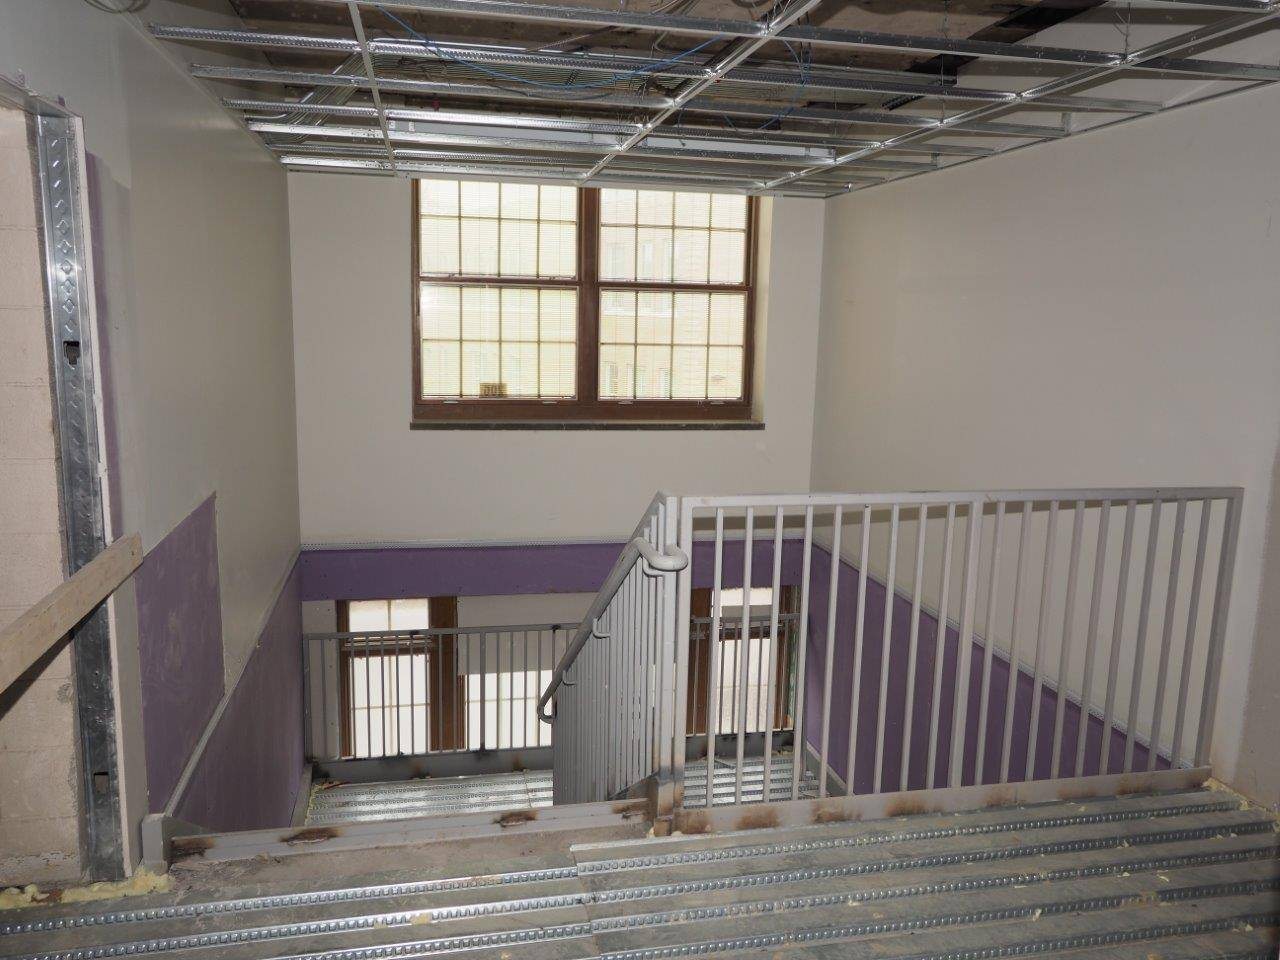 A new stairwell in the renovation area